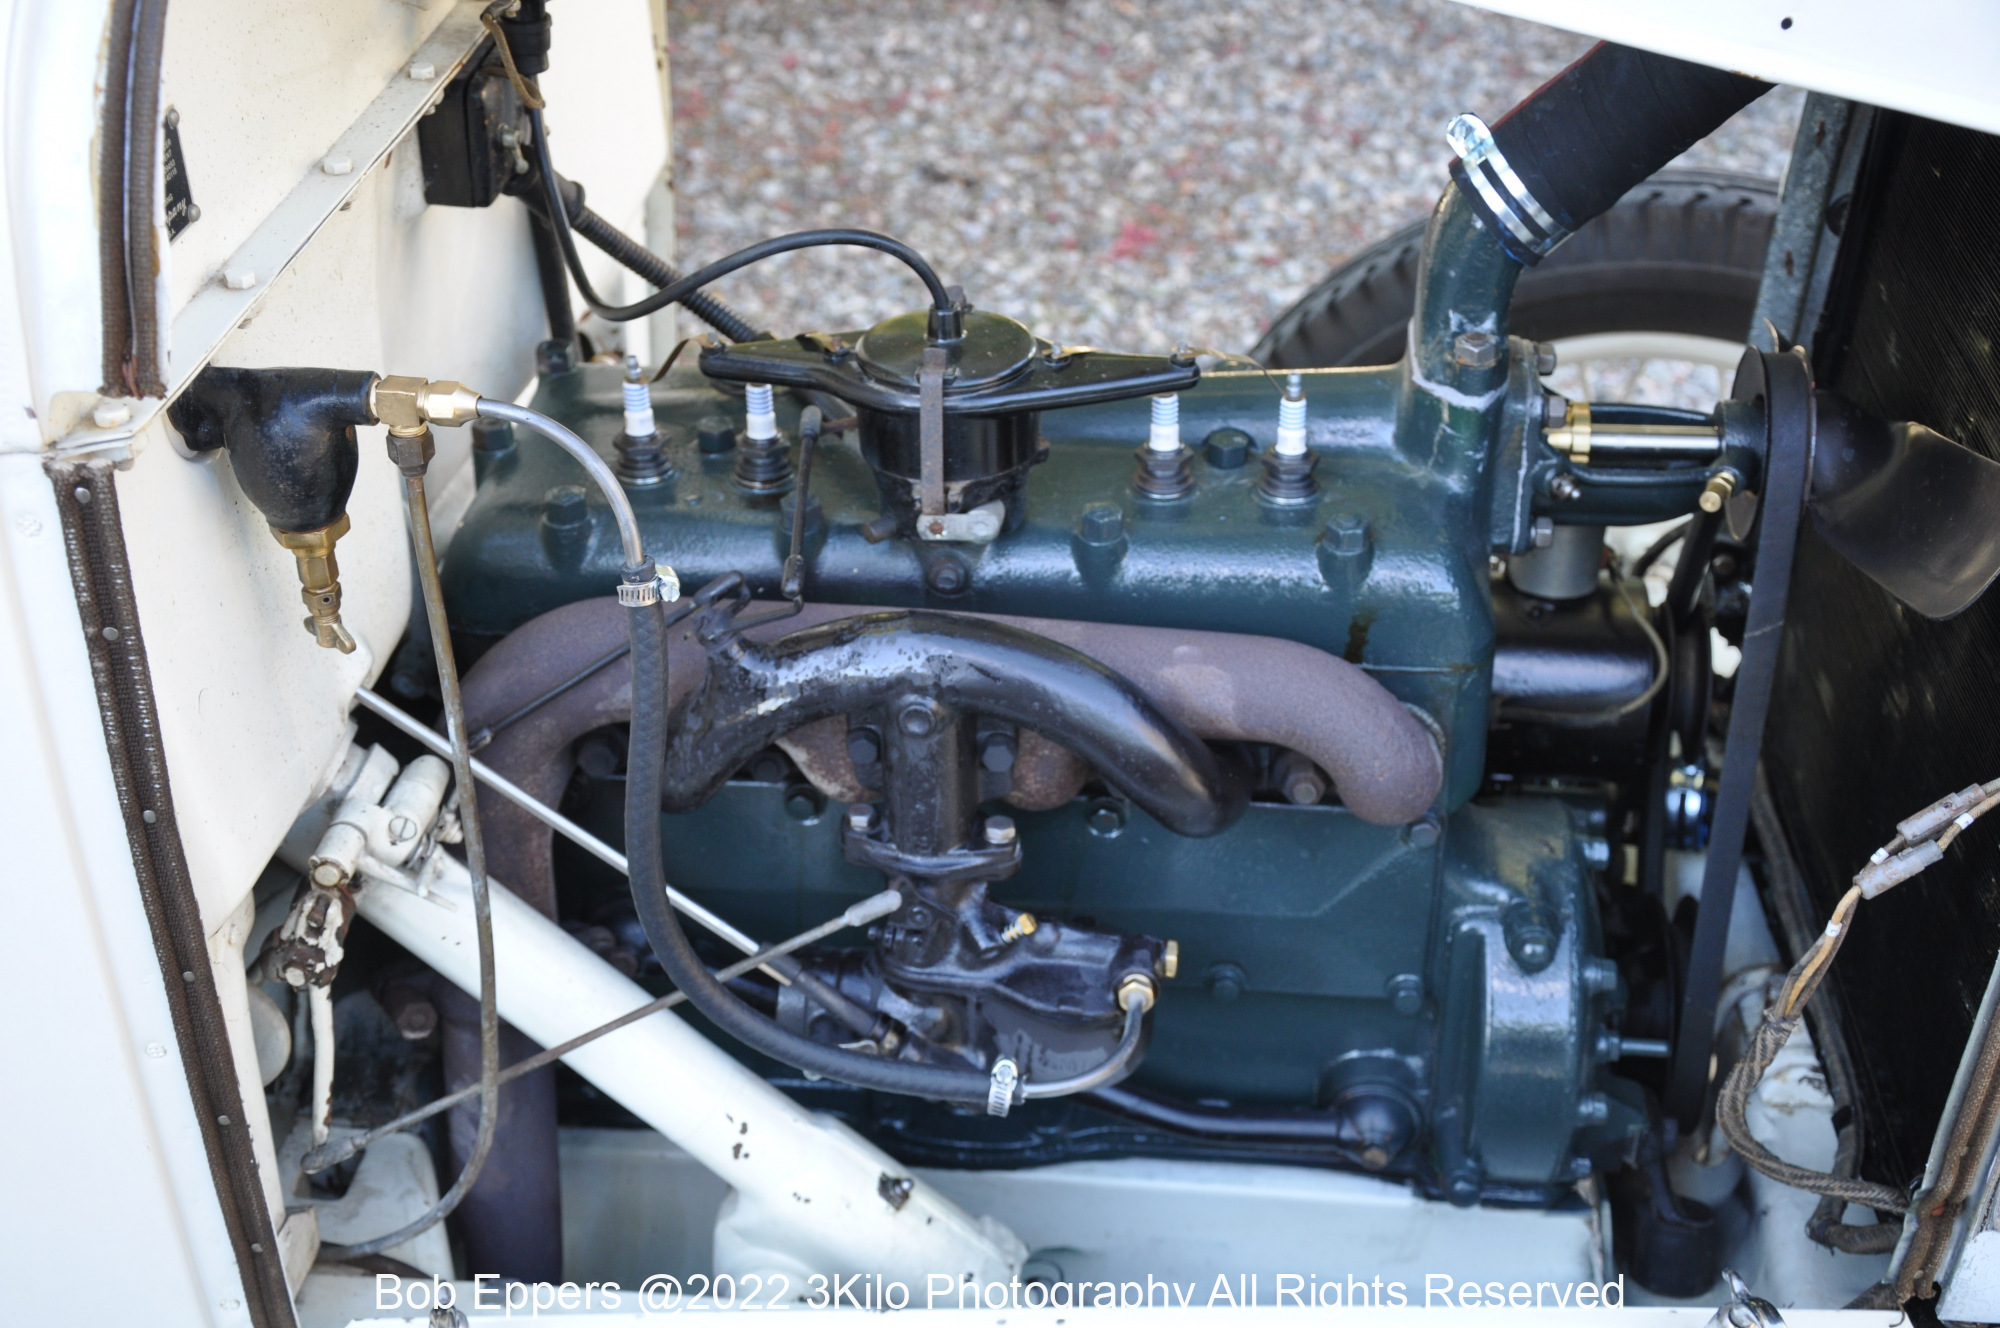 Photo of the engine in the 3 Kilo Speedster